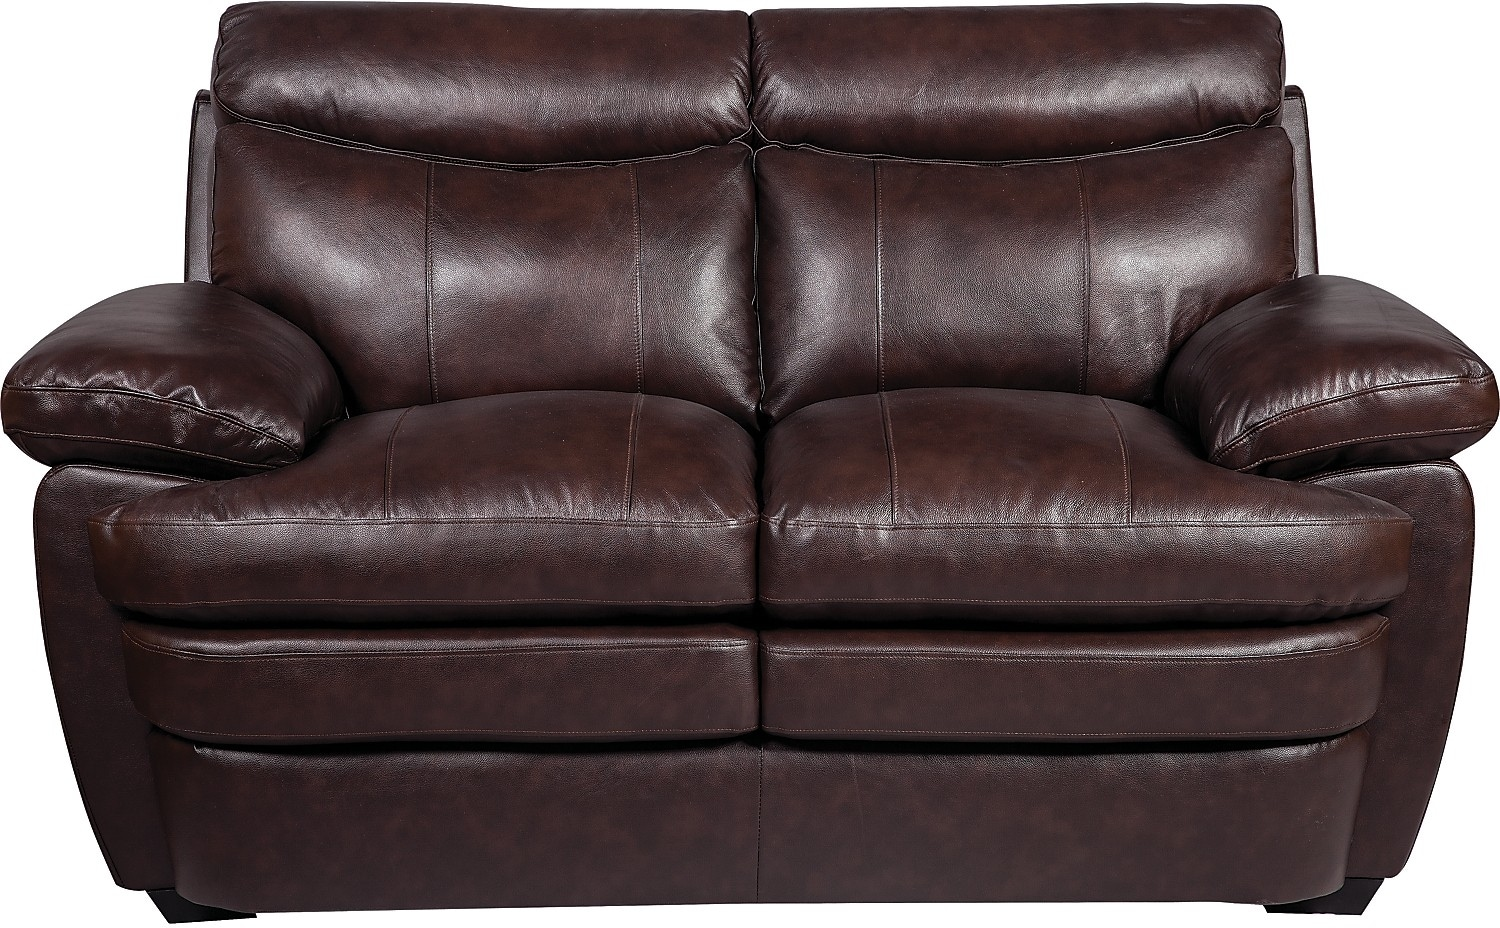 Marty Genuine Leather Loveseat Brown The Brick